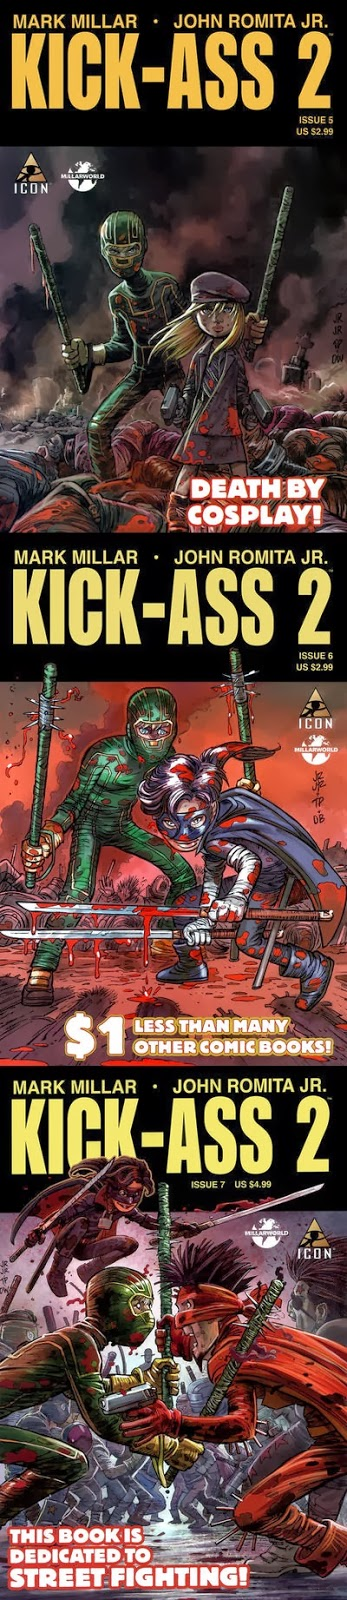 KICK-ASS 2 - Mark Millar Romita Jr.